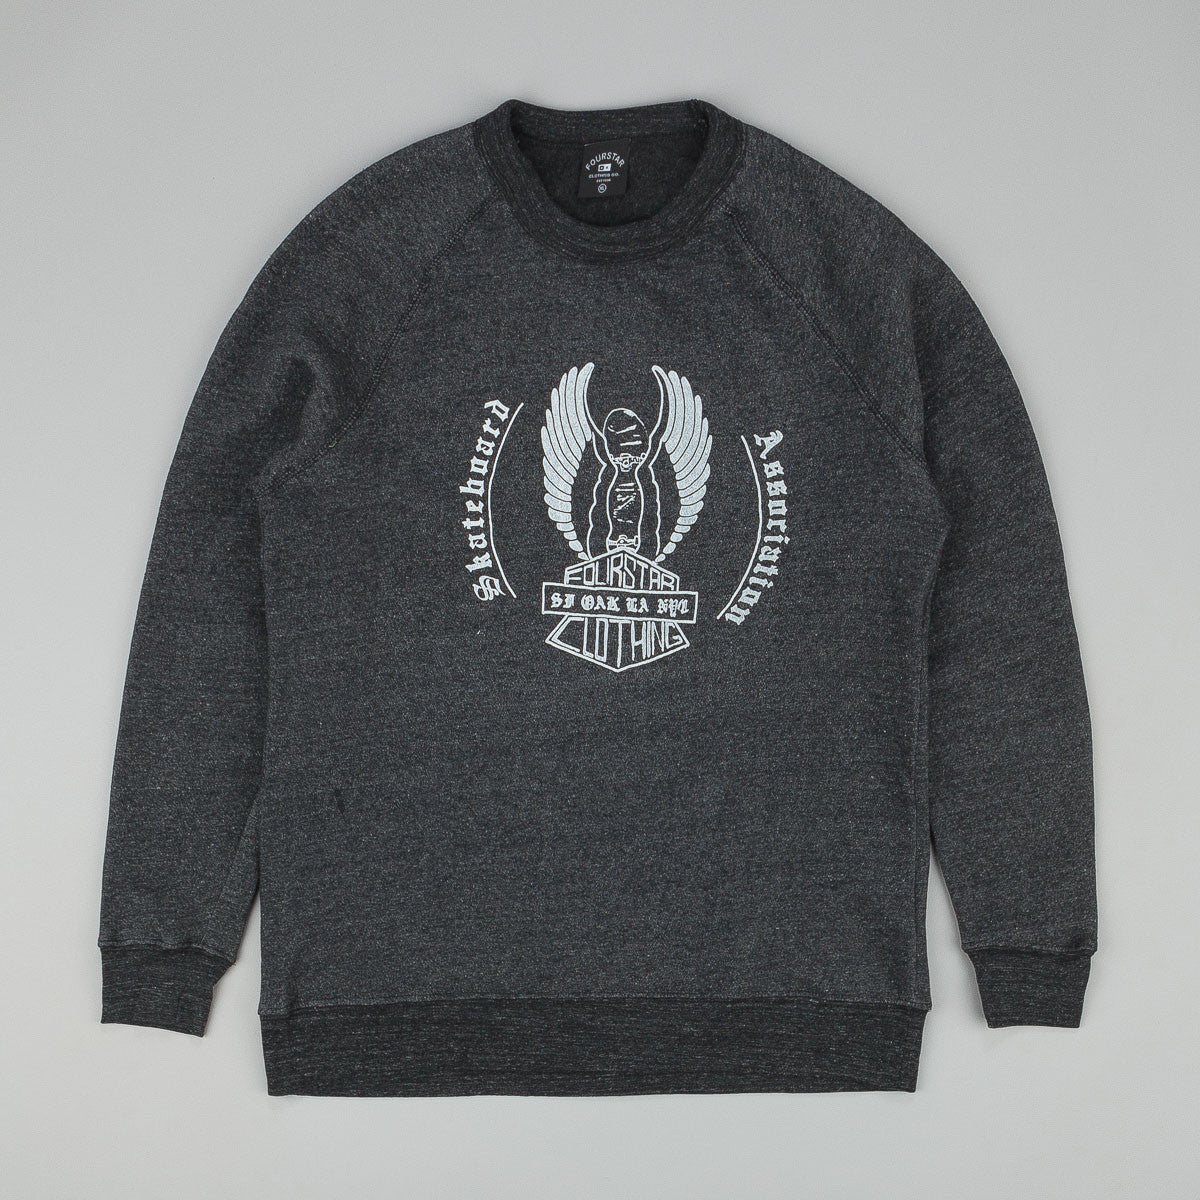 Fourstar Association Crew Sweatshirt Black Heather